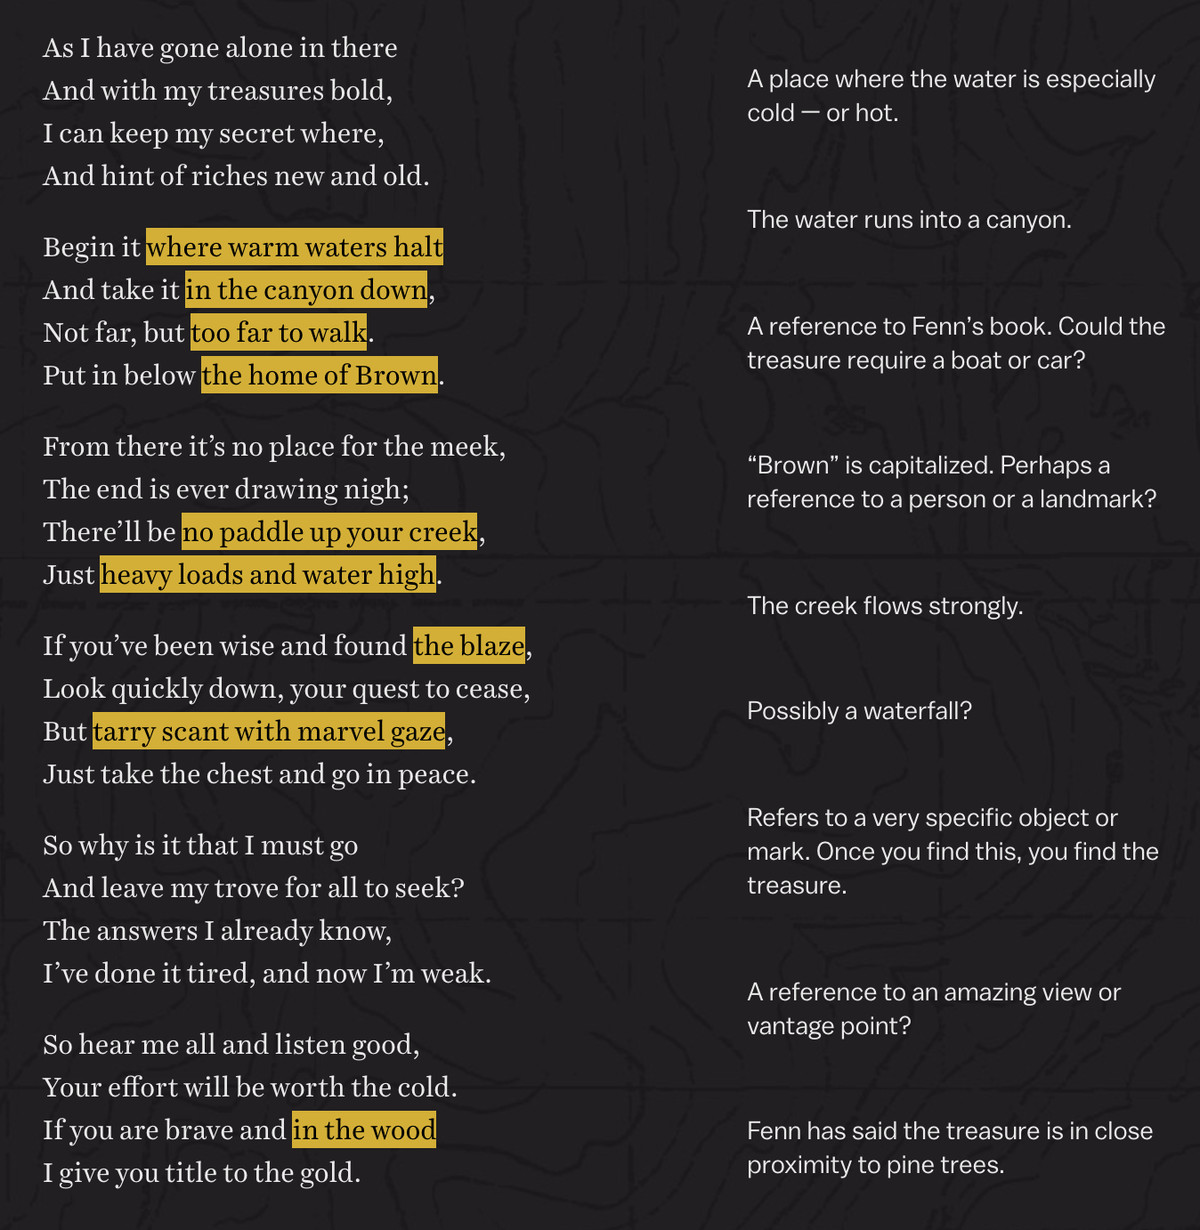 Poem with annotations evenly spaced out in the right column.